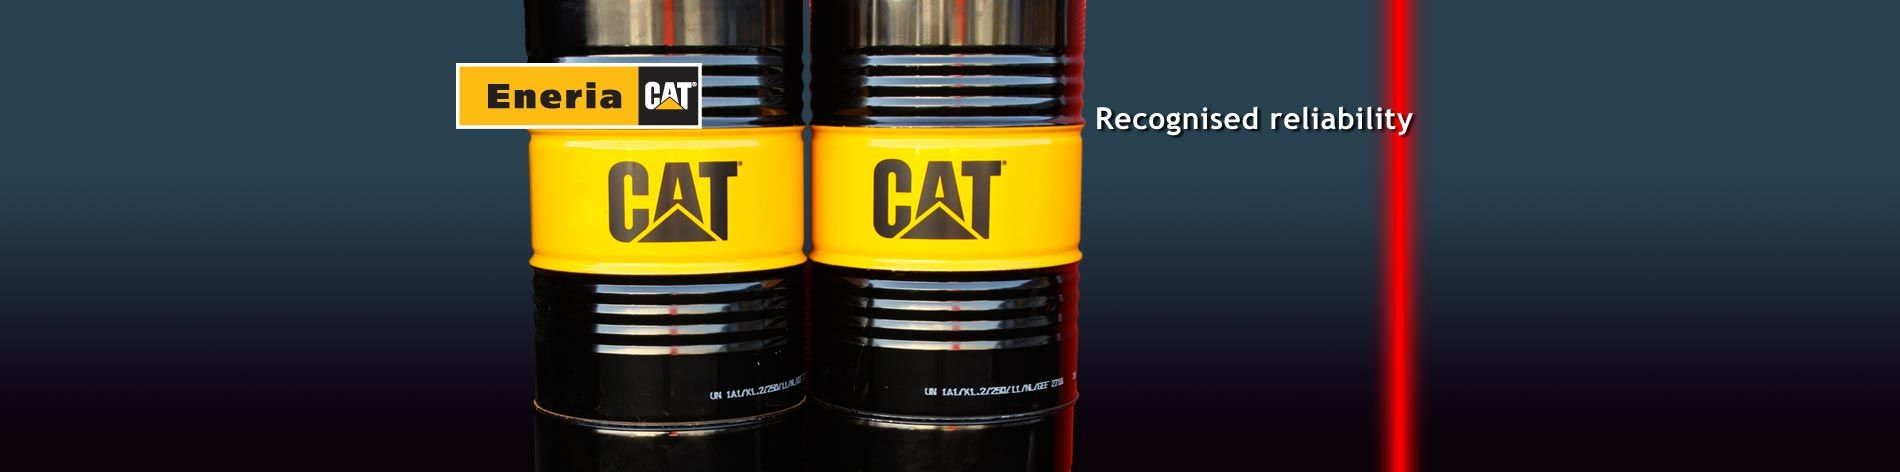 Caterpillar parts are built for durability, reliability, productivity, reuse and less environmental impact.